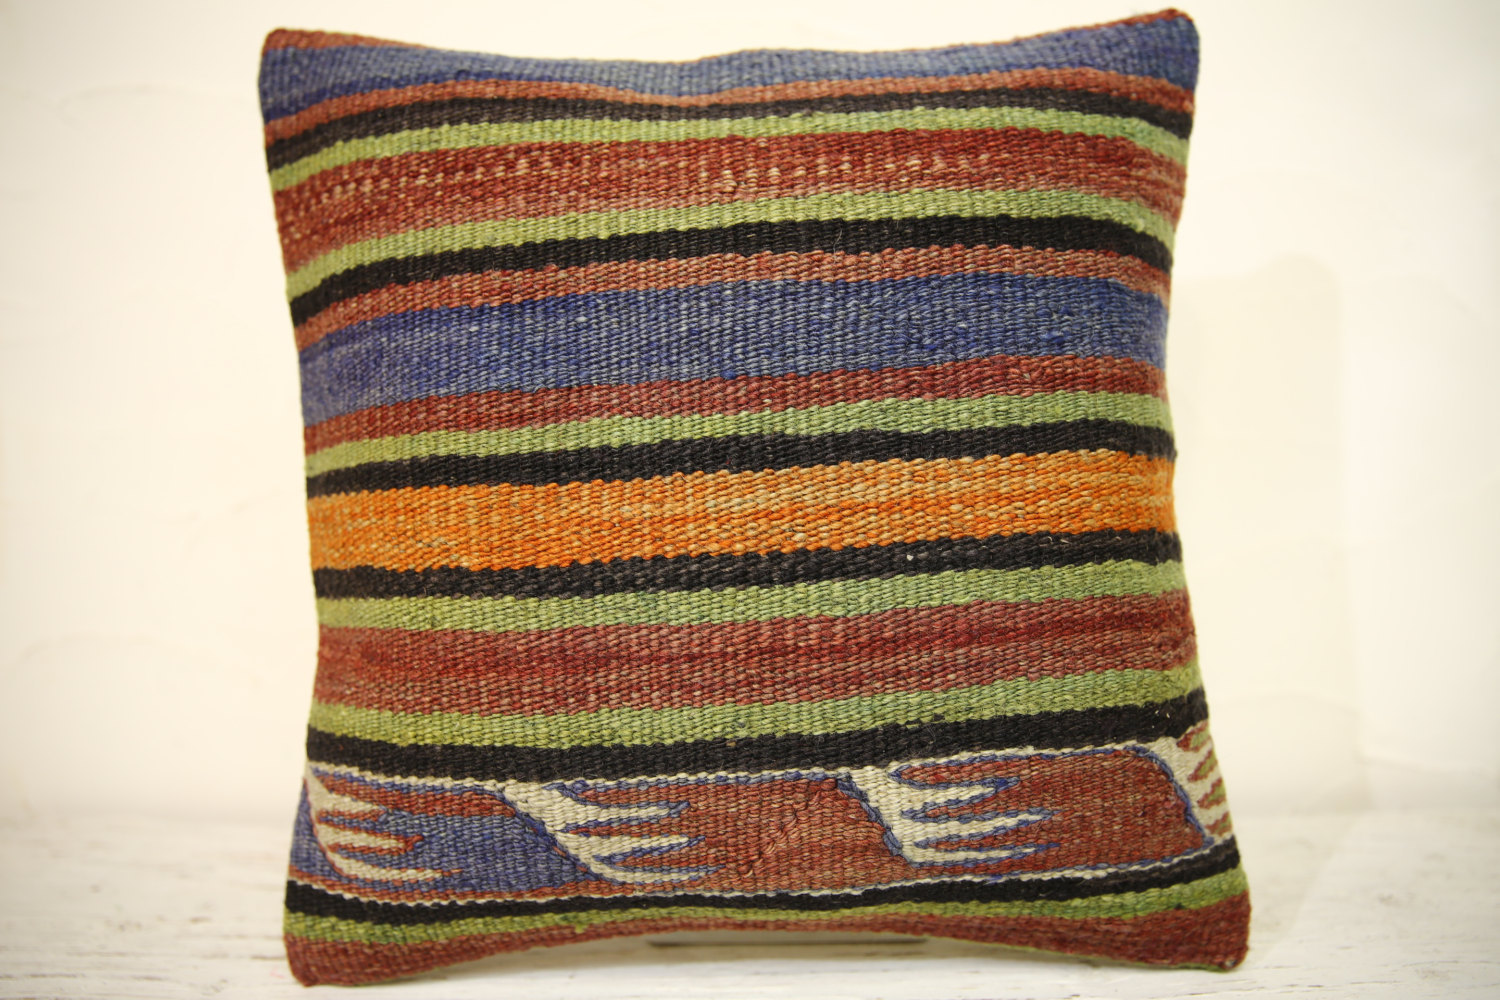 Kilim Pillows | 16x16 | Turkish pillows | 1360 | Accent Pillow,Decorative Pillow